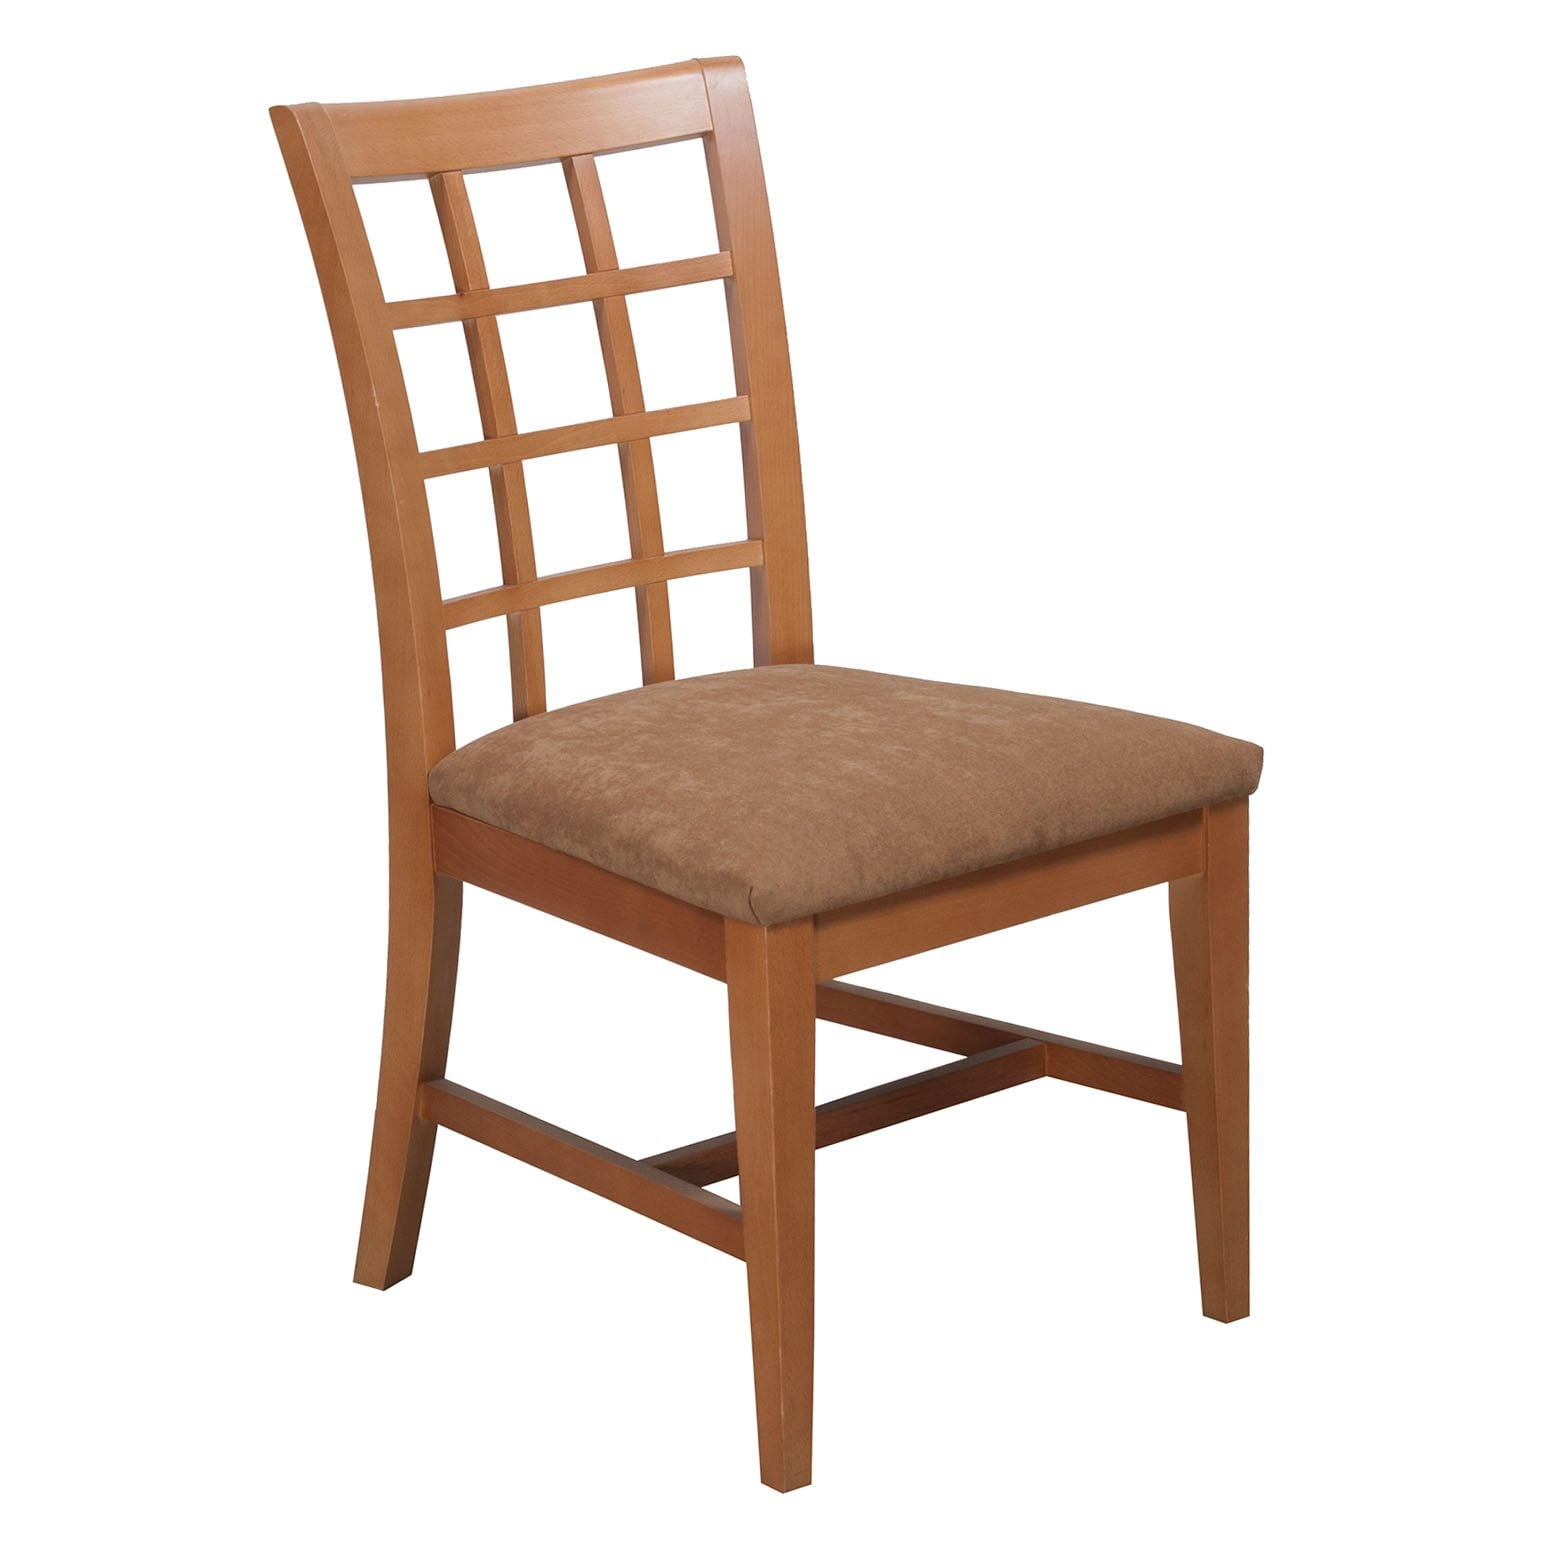 American Atelier Used Side Or Dining Chair, Maple